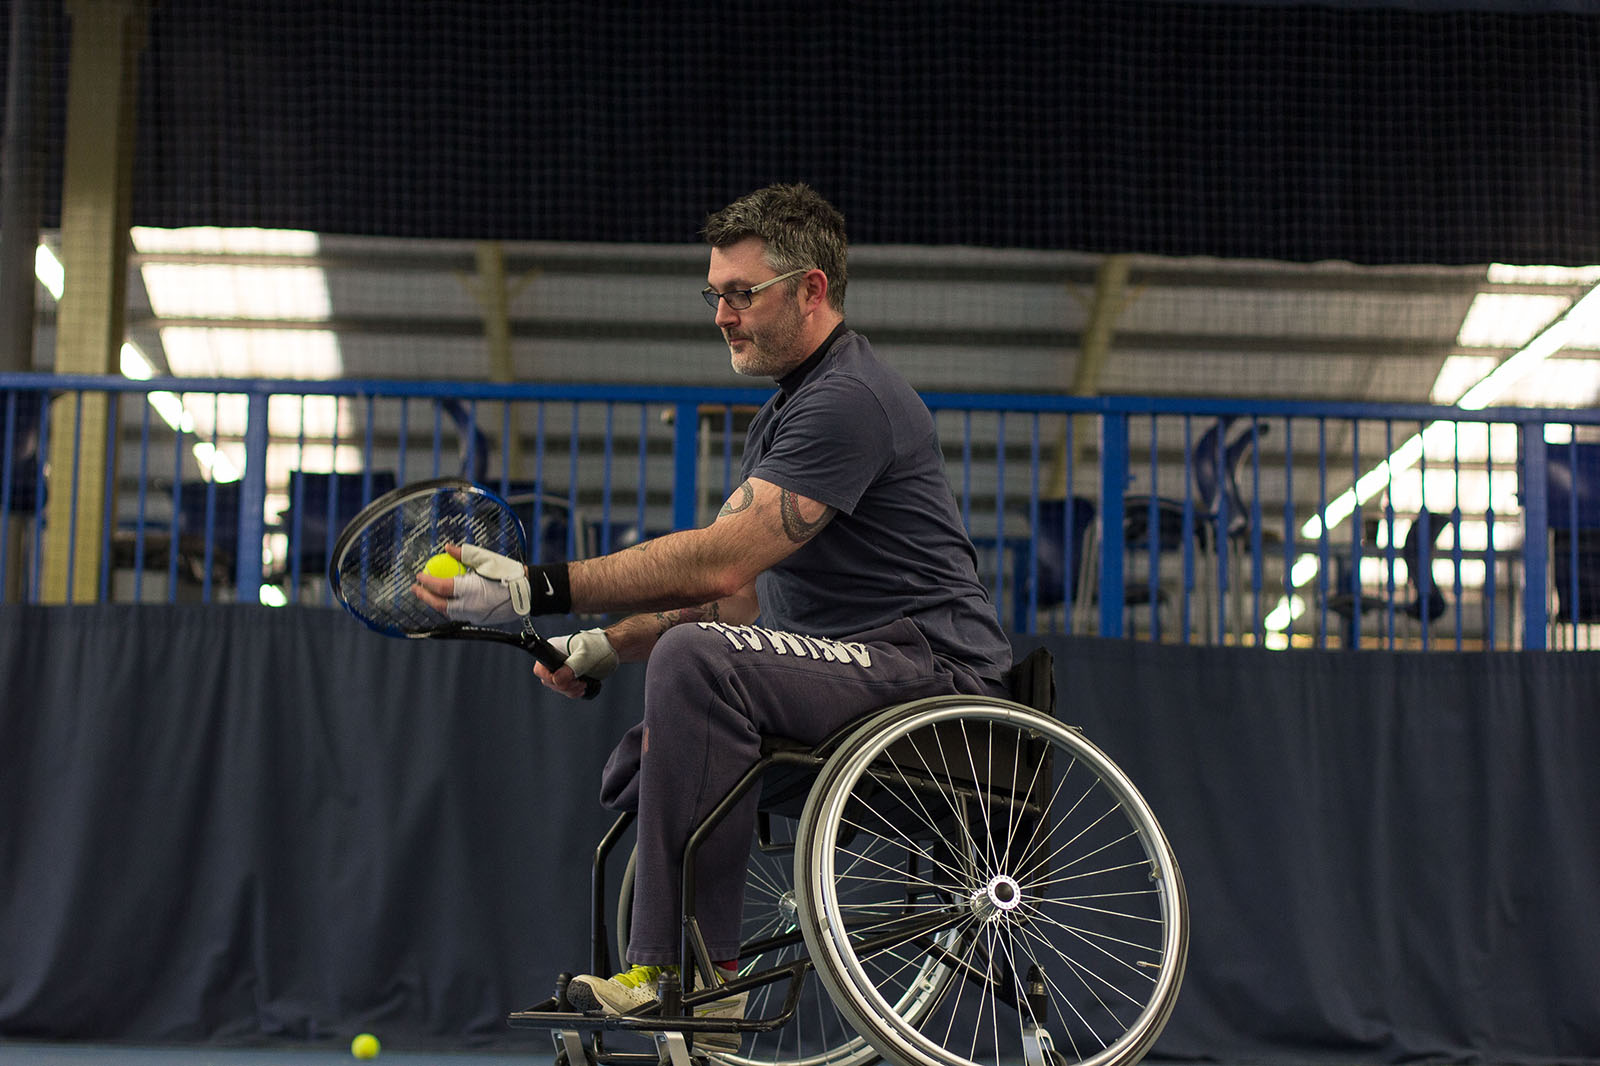 man in a wheelchair serving a tennis ball